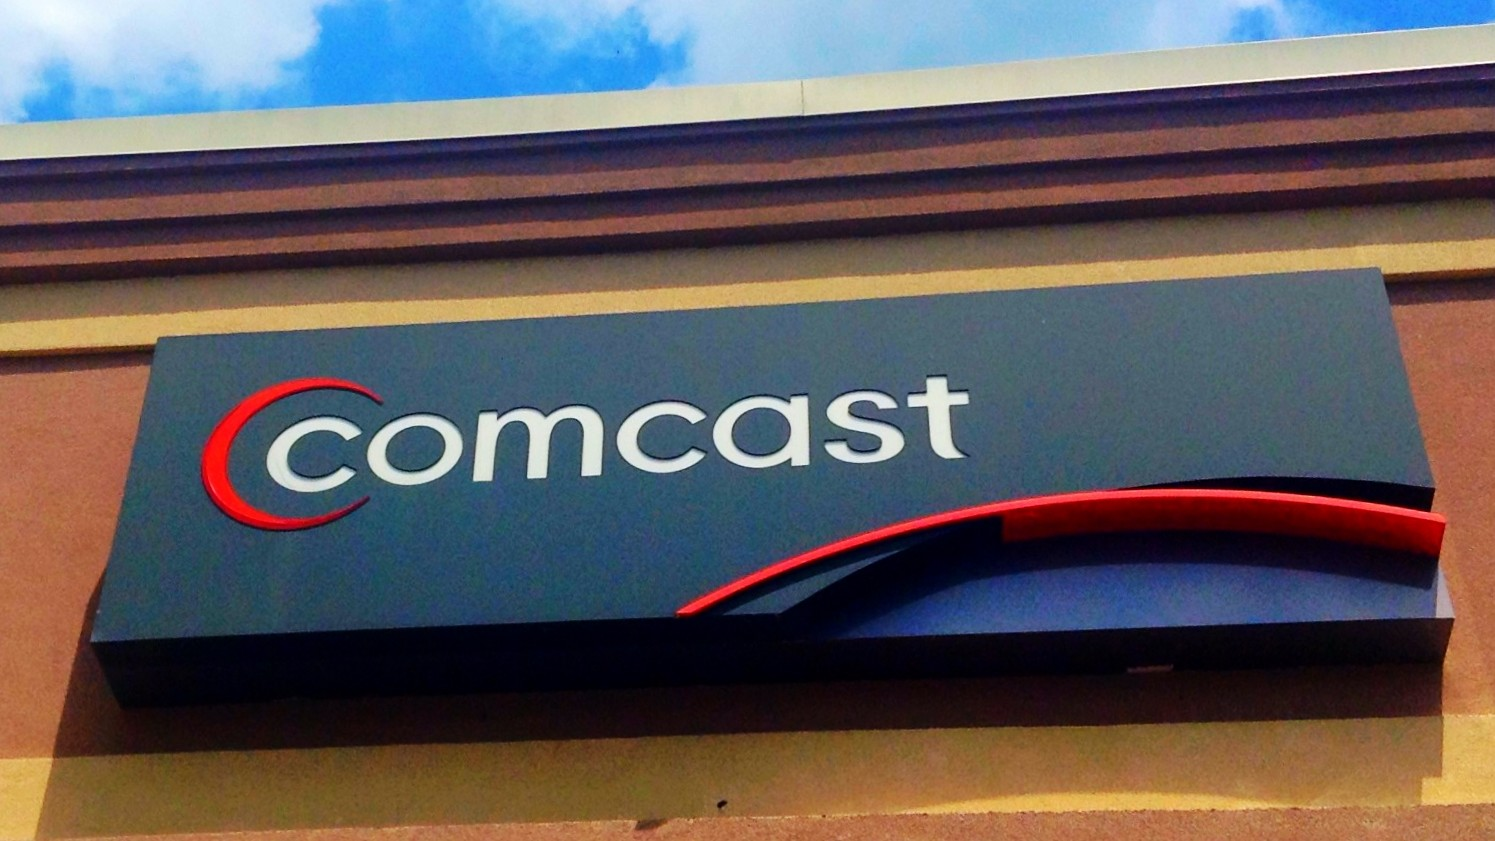 This Company Will Cancel Your Comcast Subscription for $5